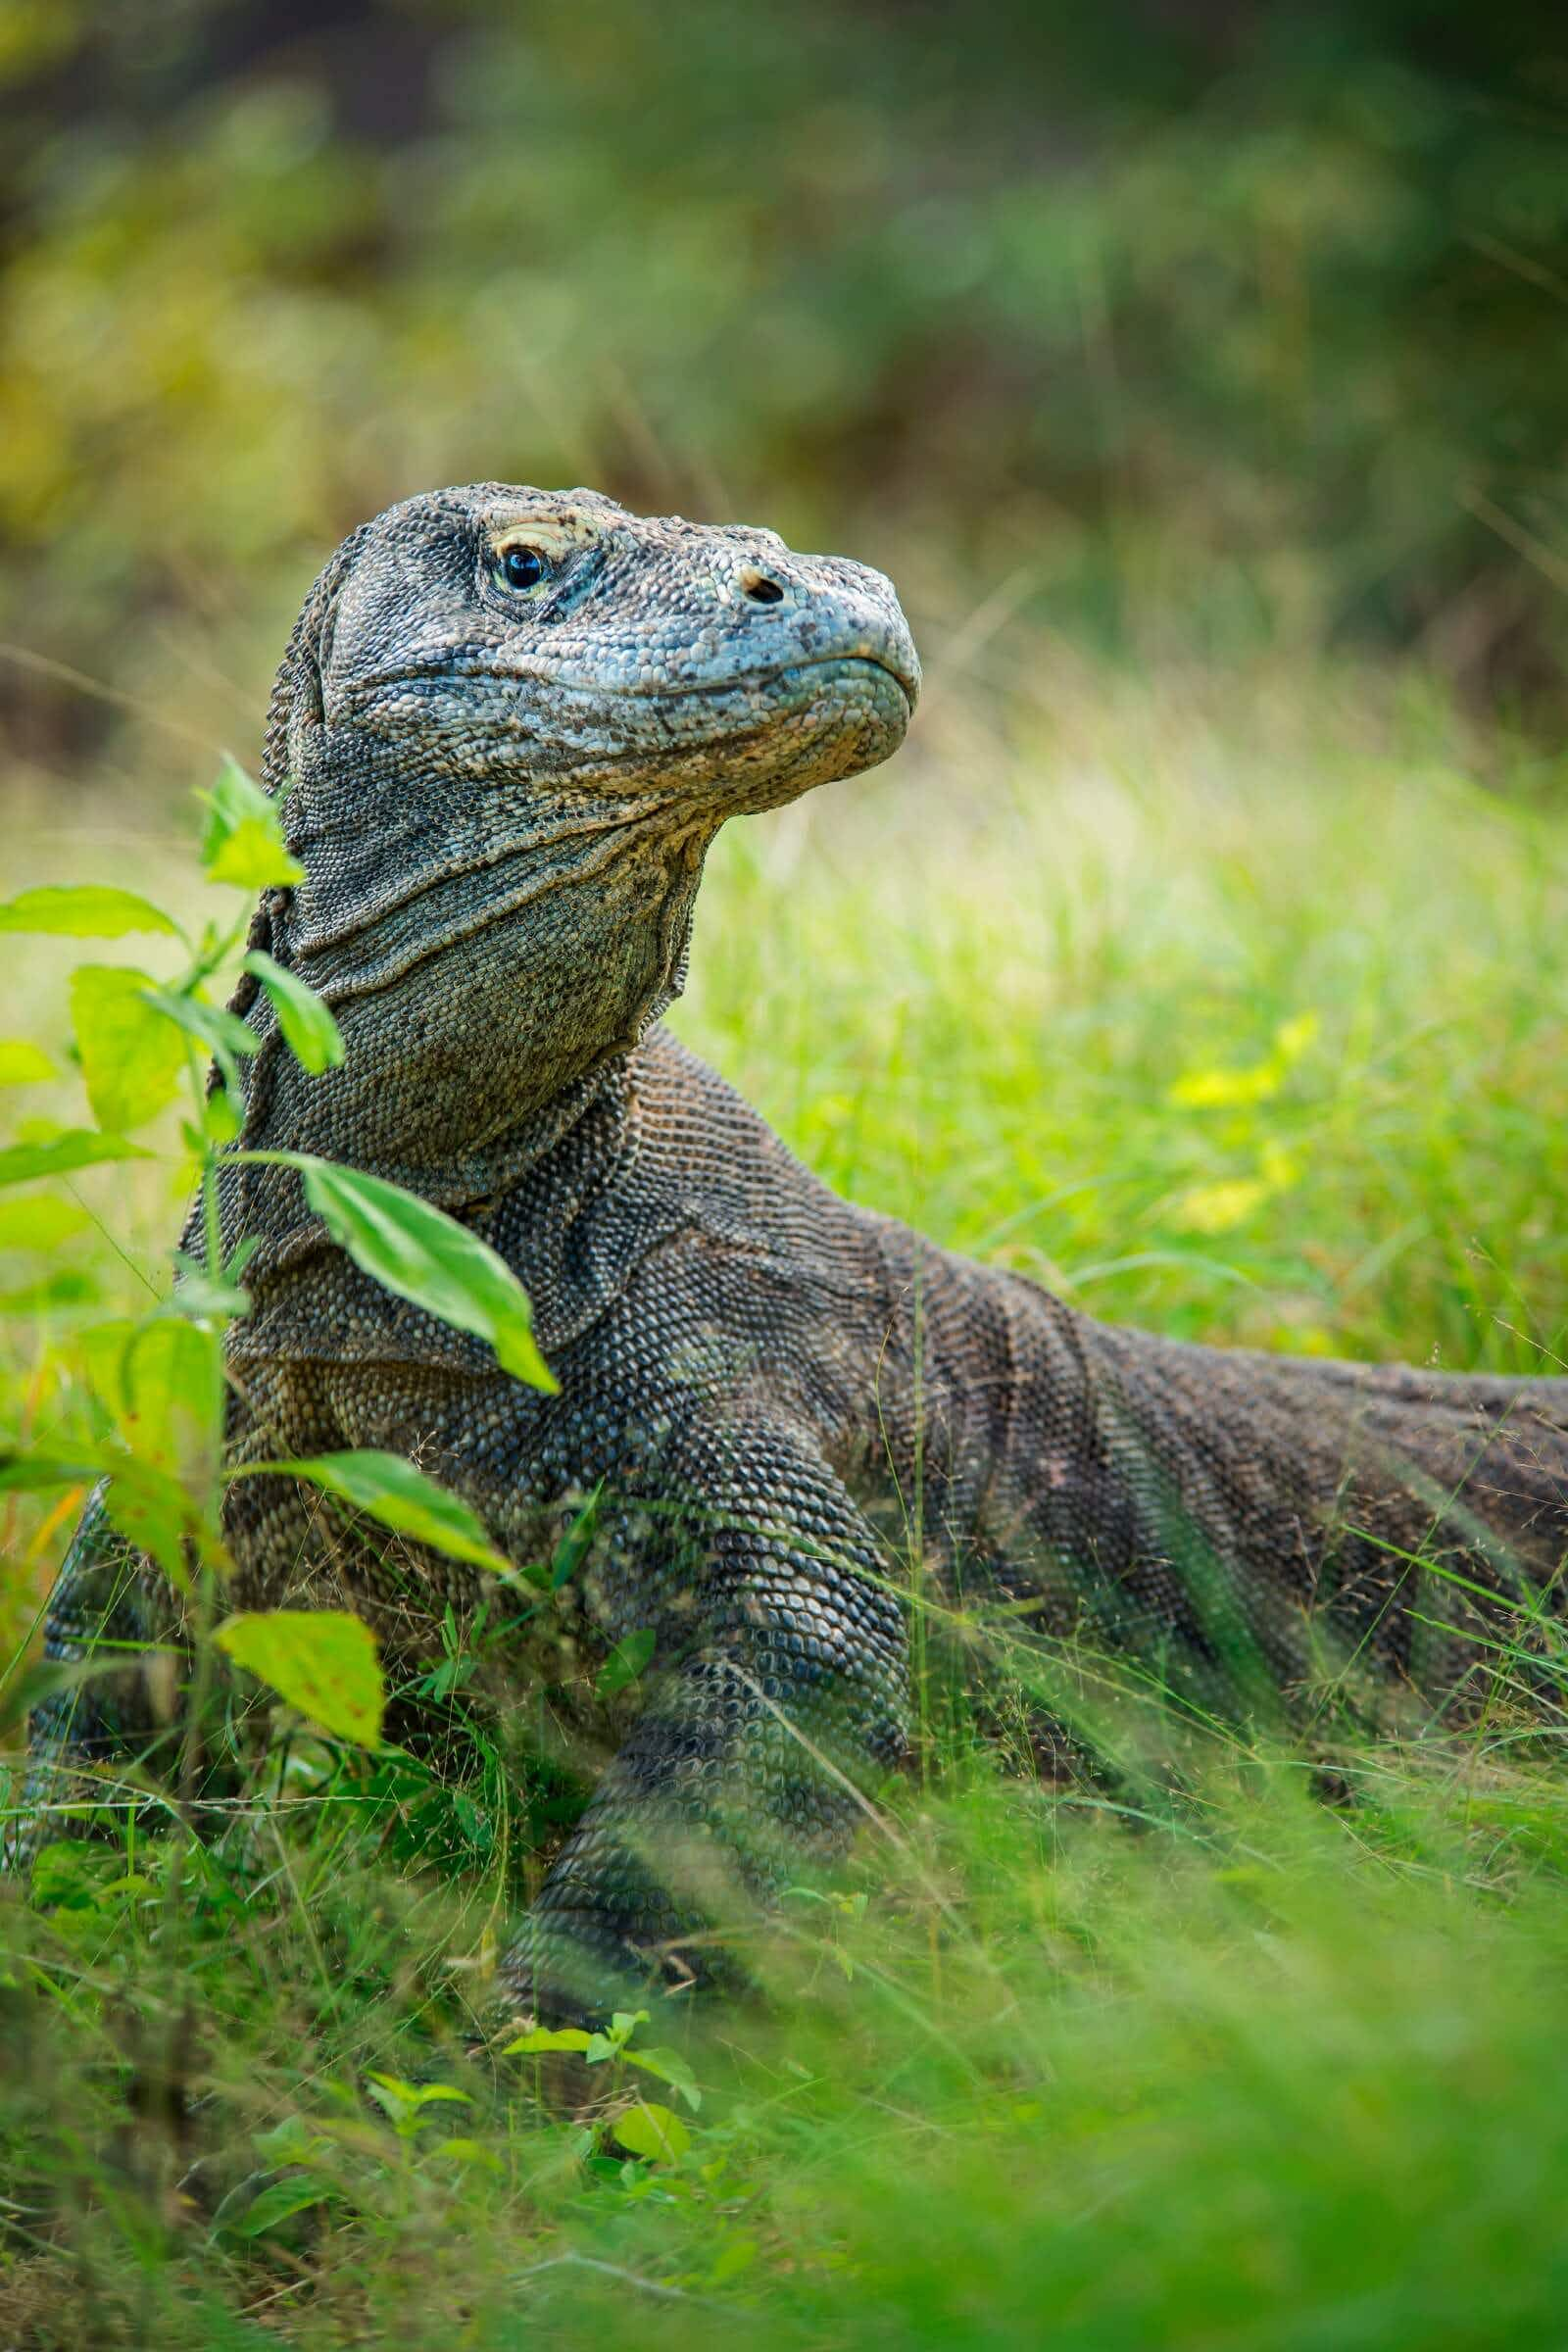 Calls for protection of Indonesia's Komodo dragons as tourists flock to the islands